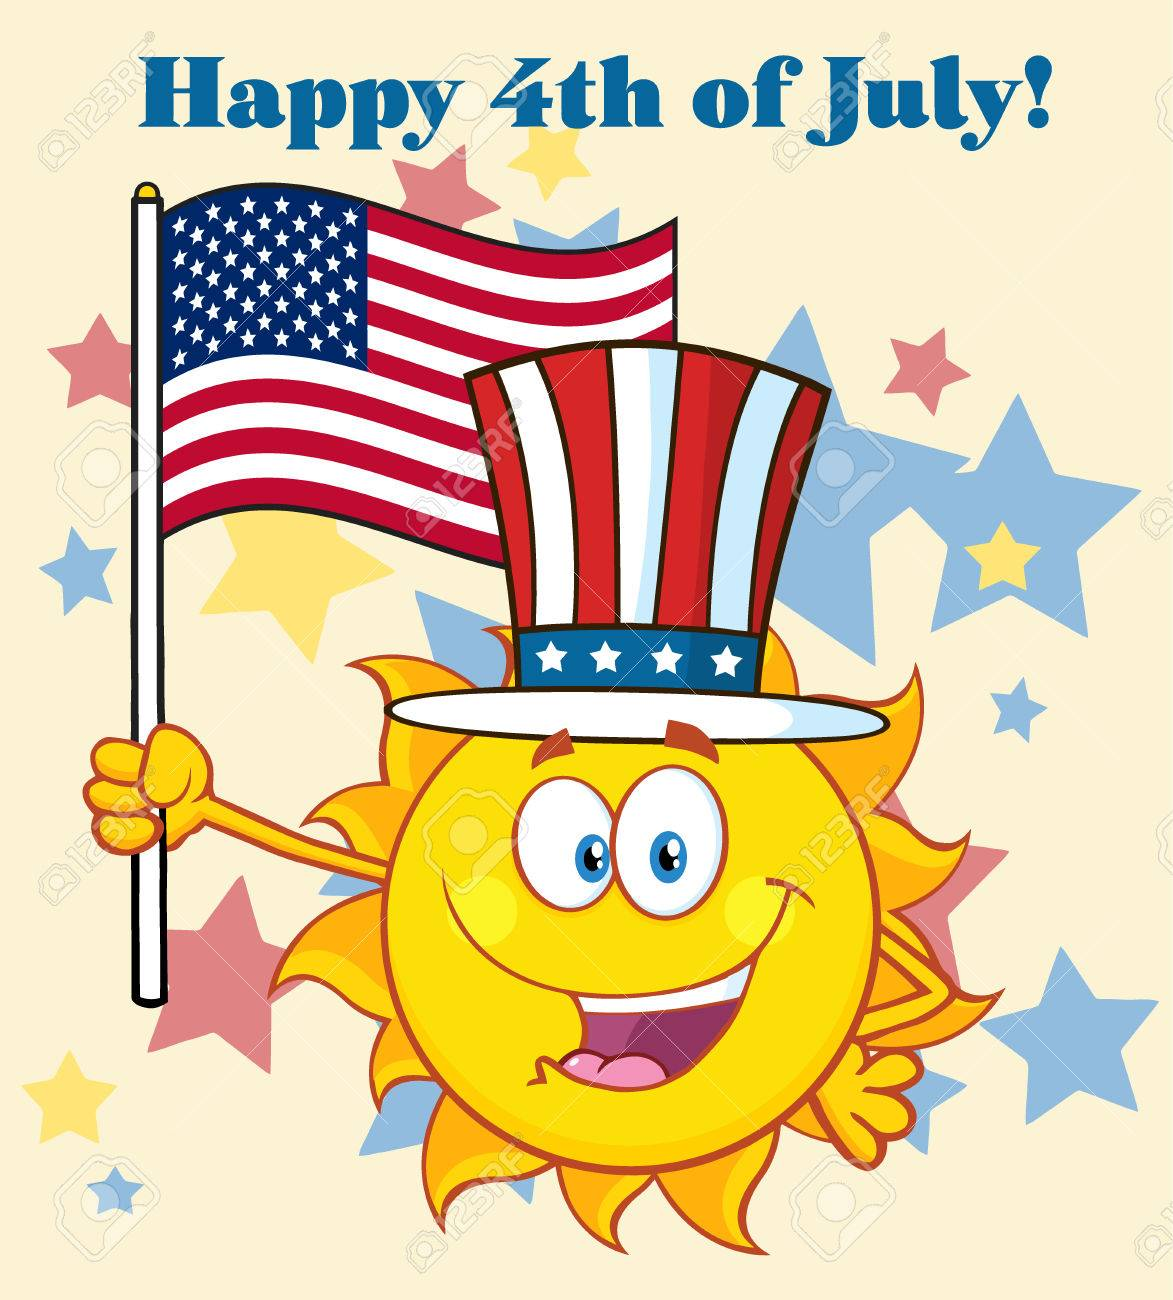 ... Happy 4th July. Cute Sun Cartoon Mascot Character With Patriotic Hat  Holding An American Flag. Illustration With Background